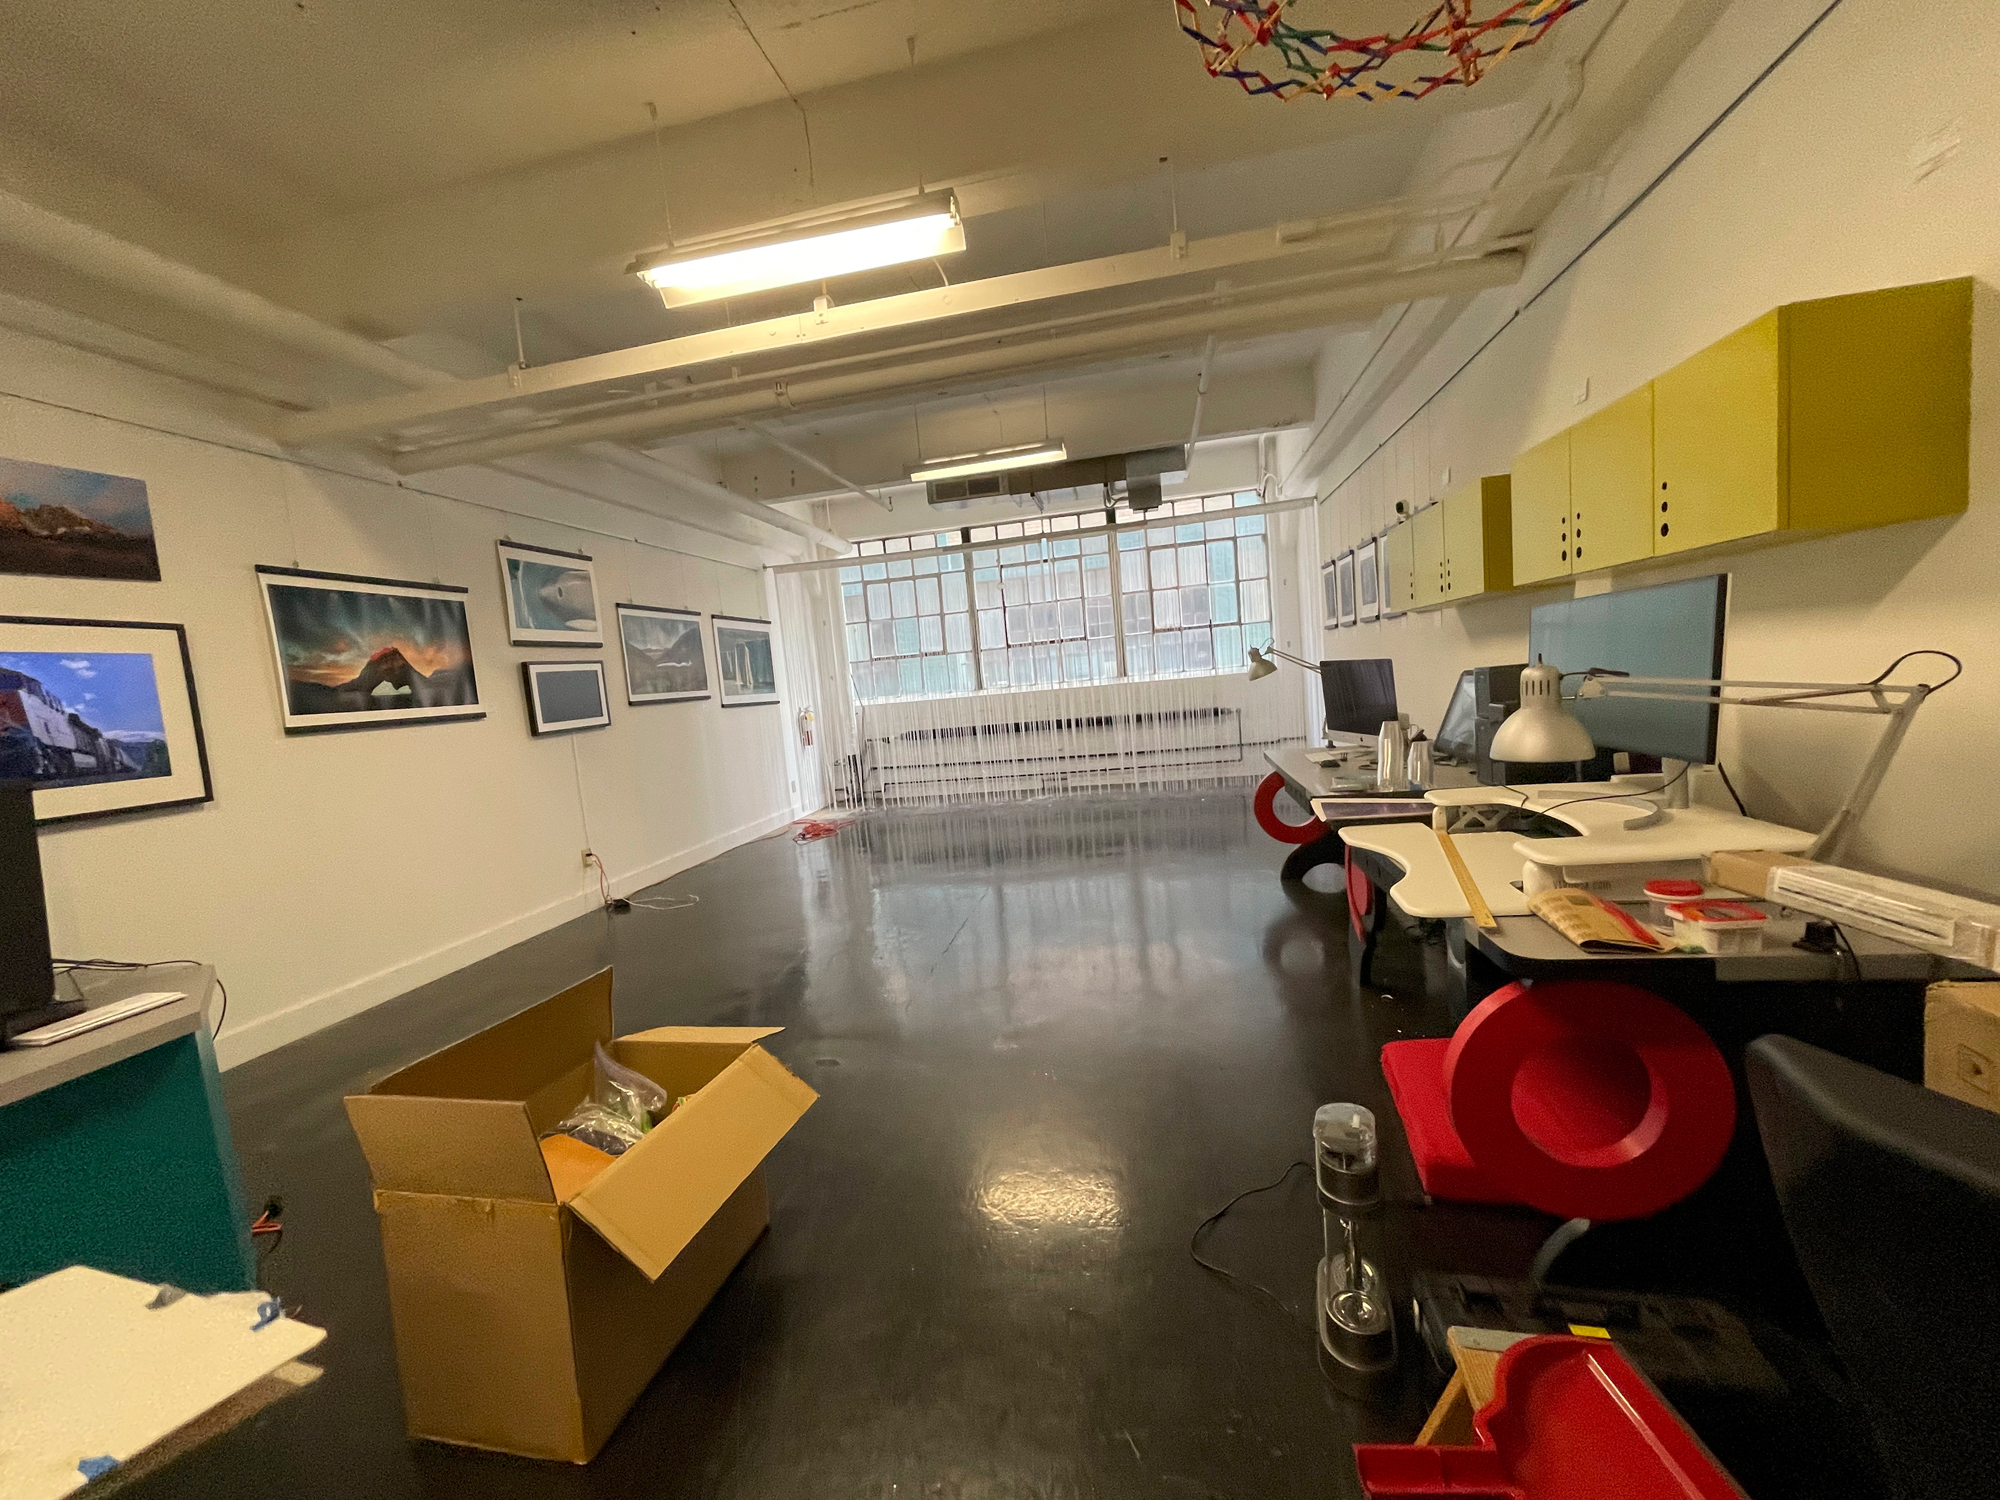 Our old space is now just about empty